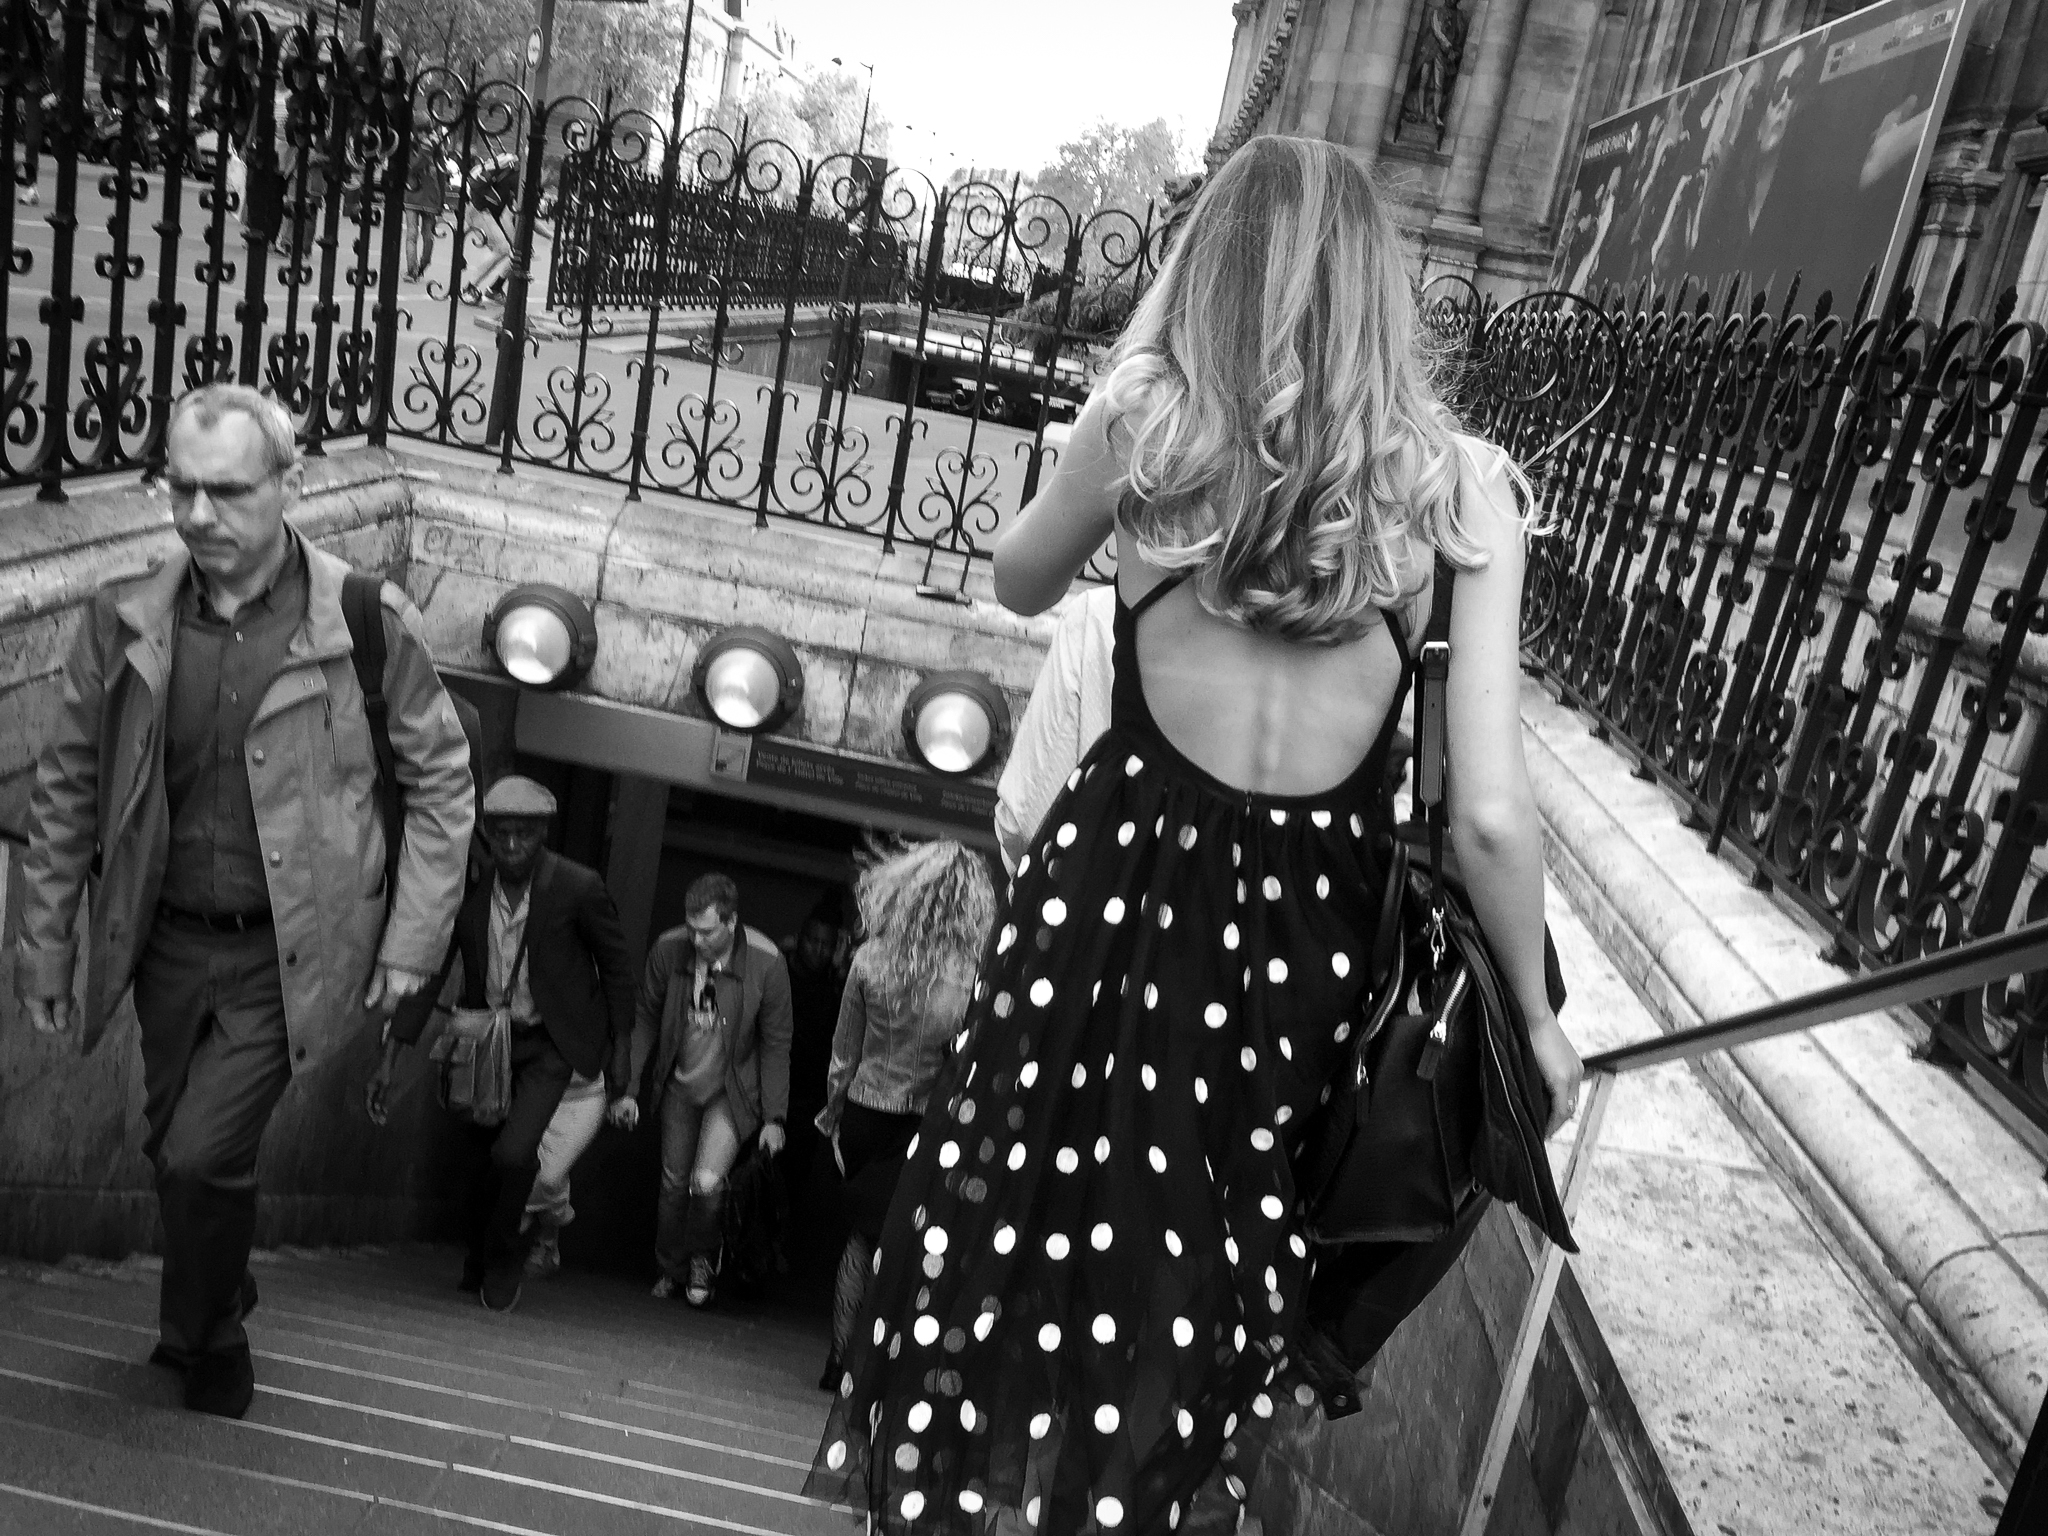 A woman wearing a polka dot dress enters the metro in Paris, France.